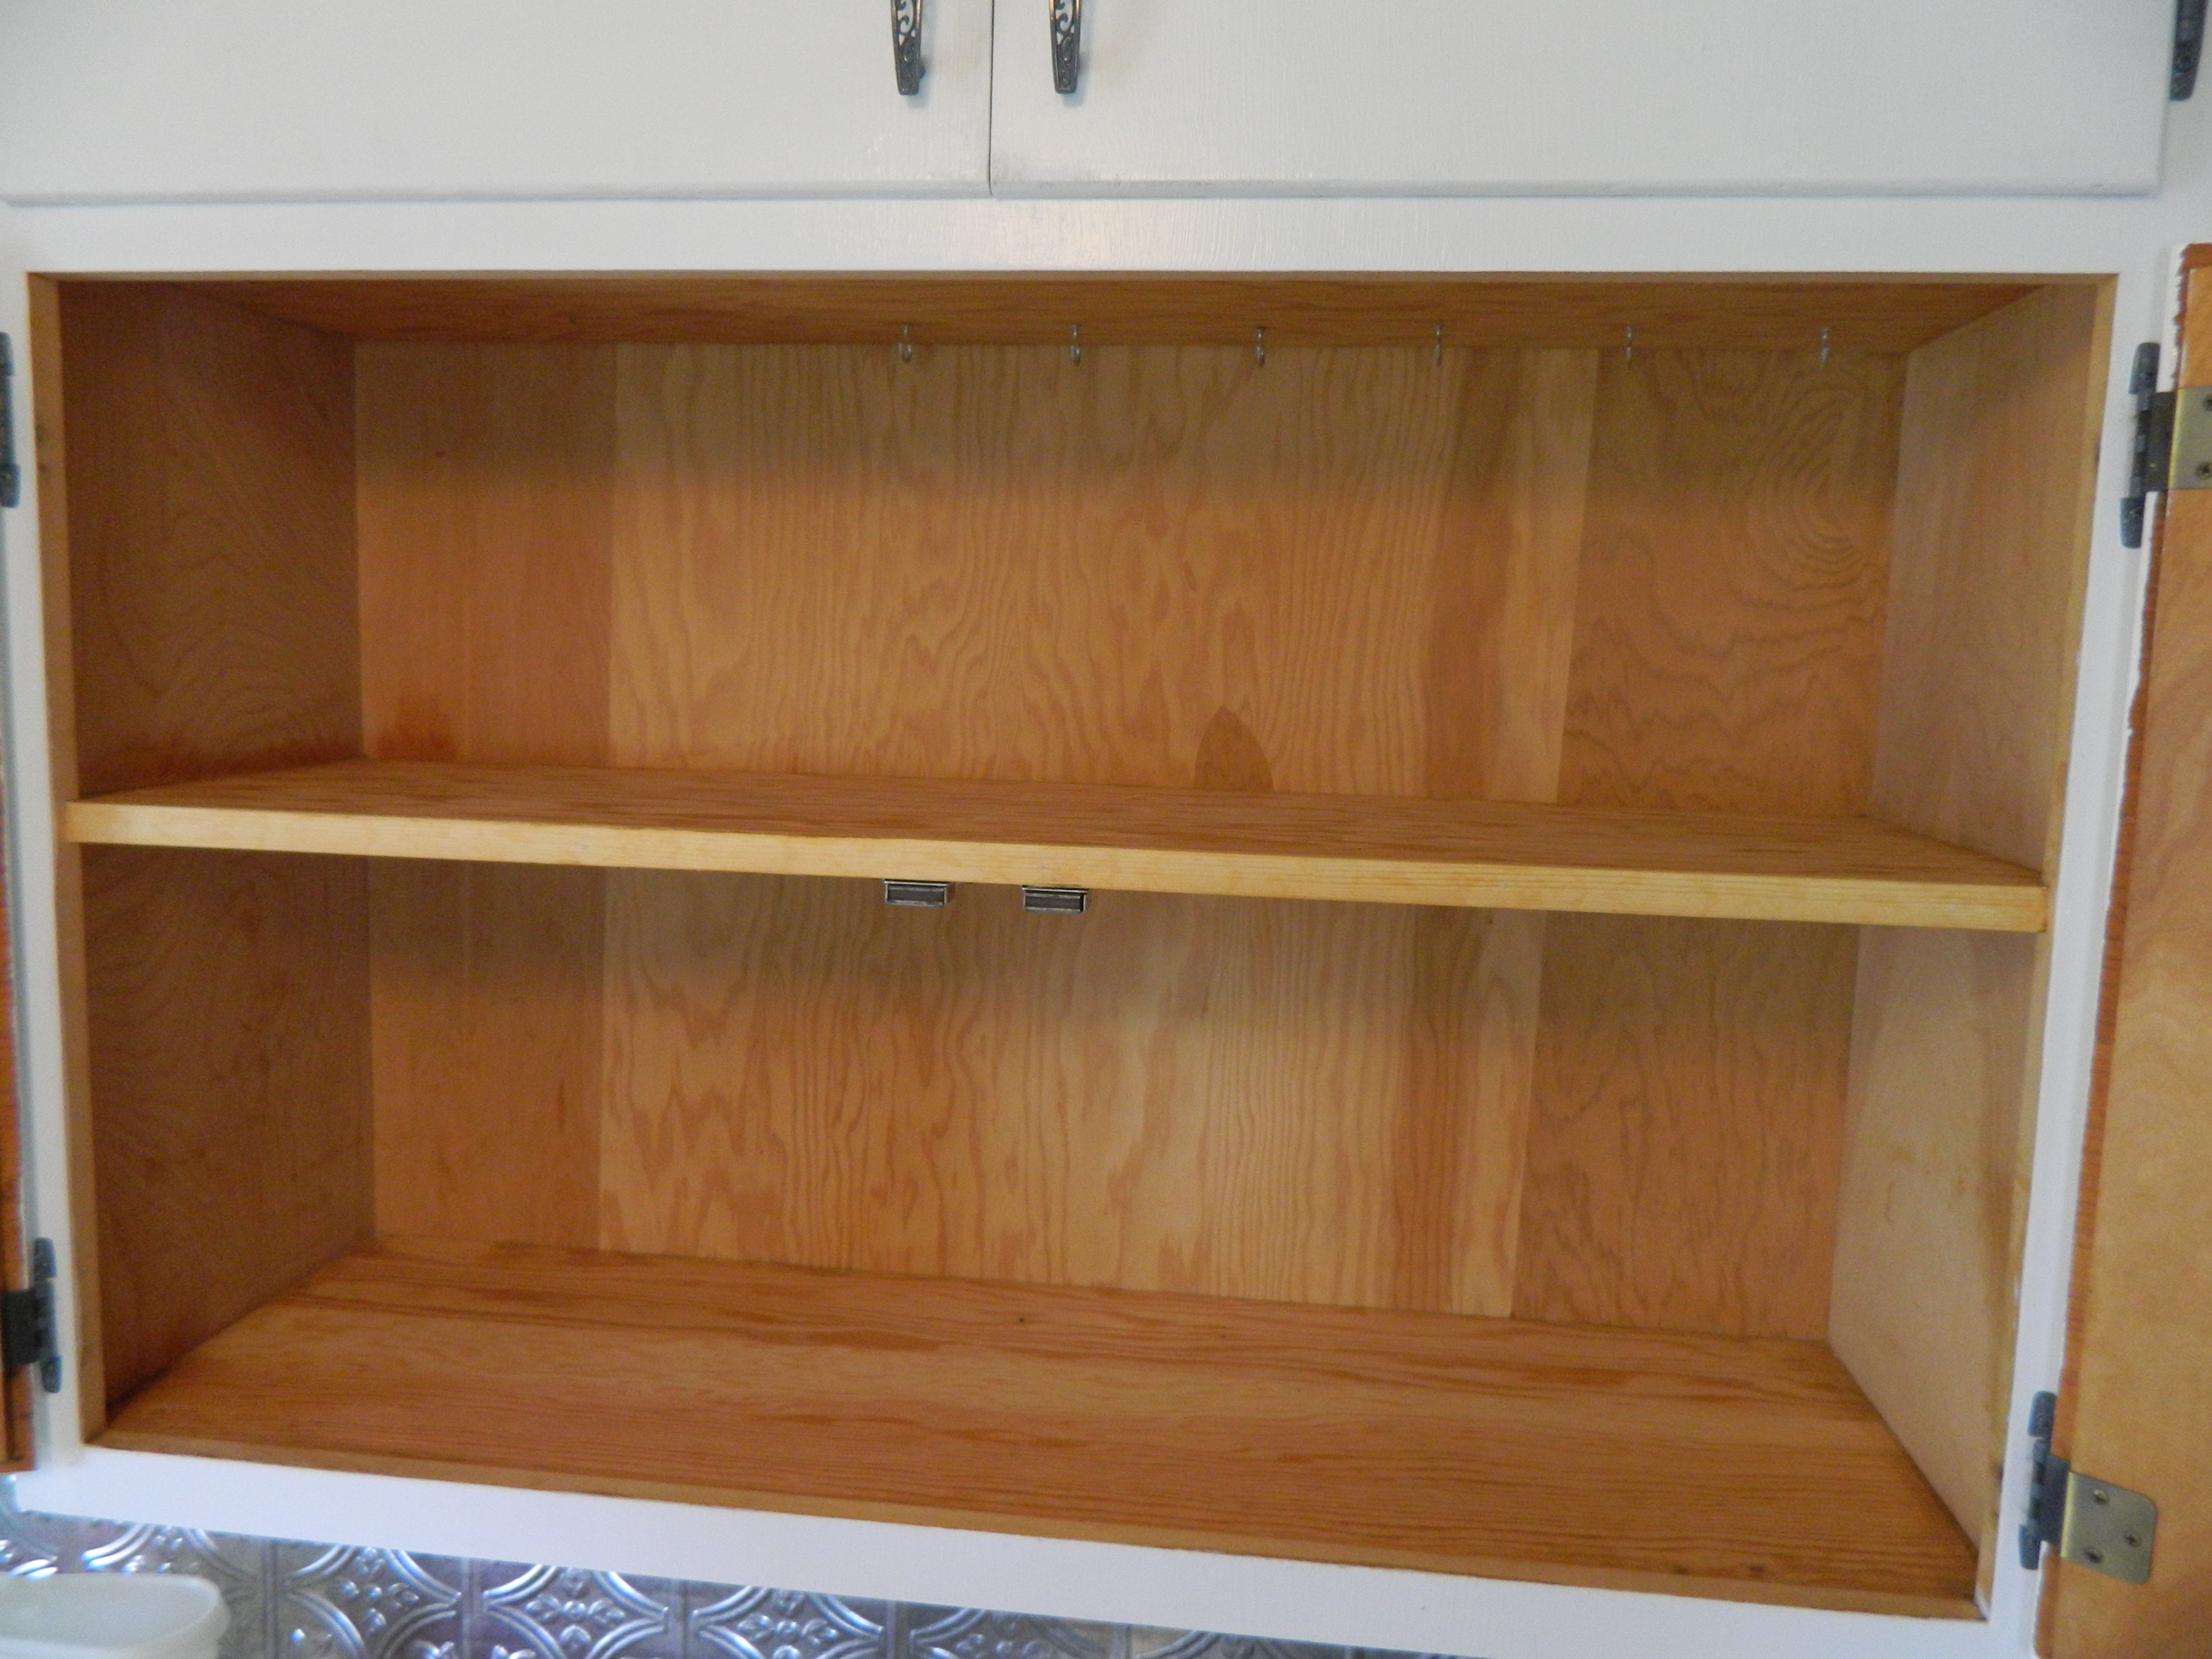 Permalink to Extra Shelves For Kitchen Cabinets